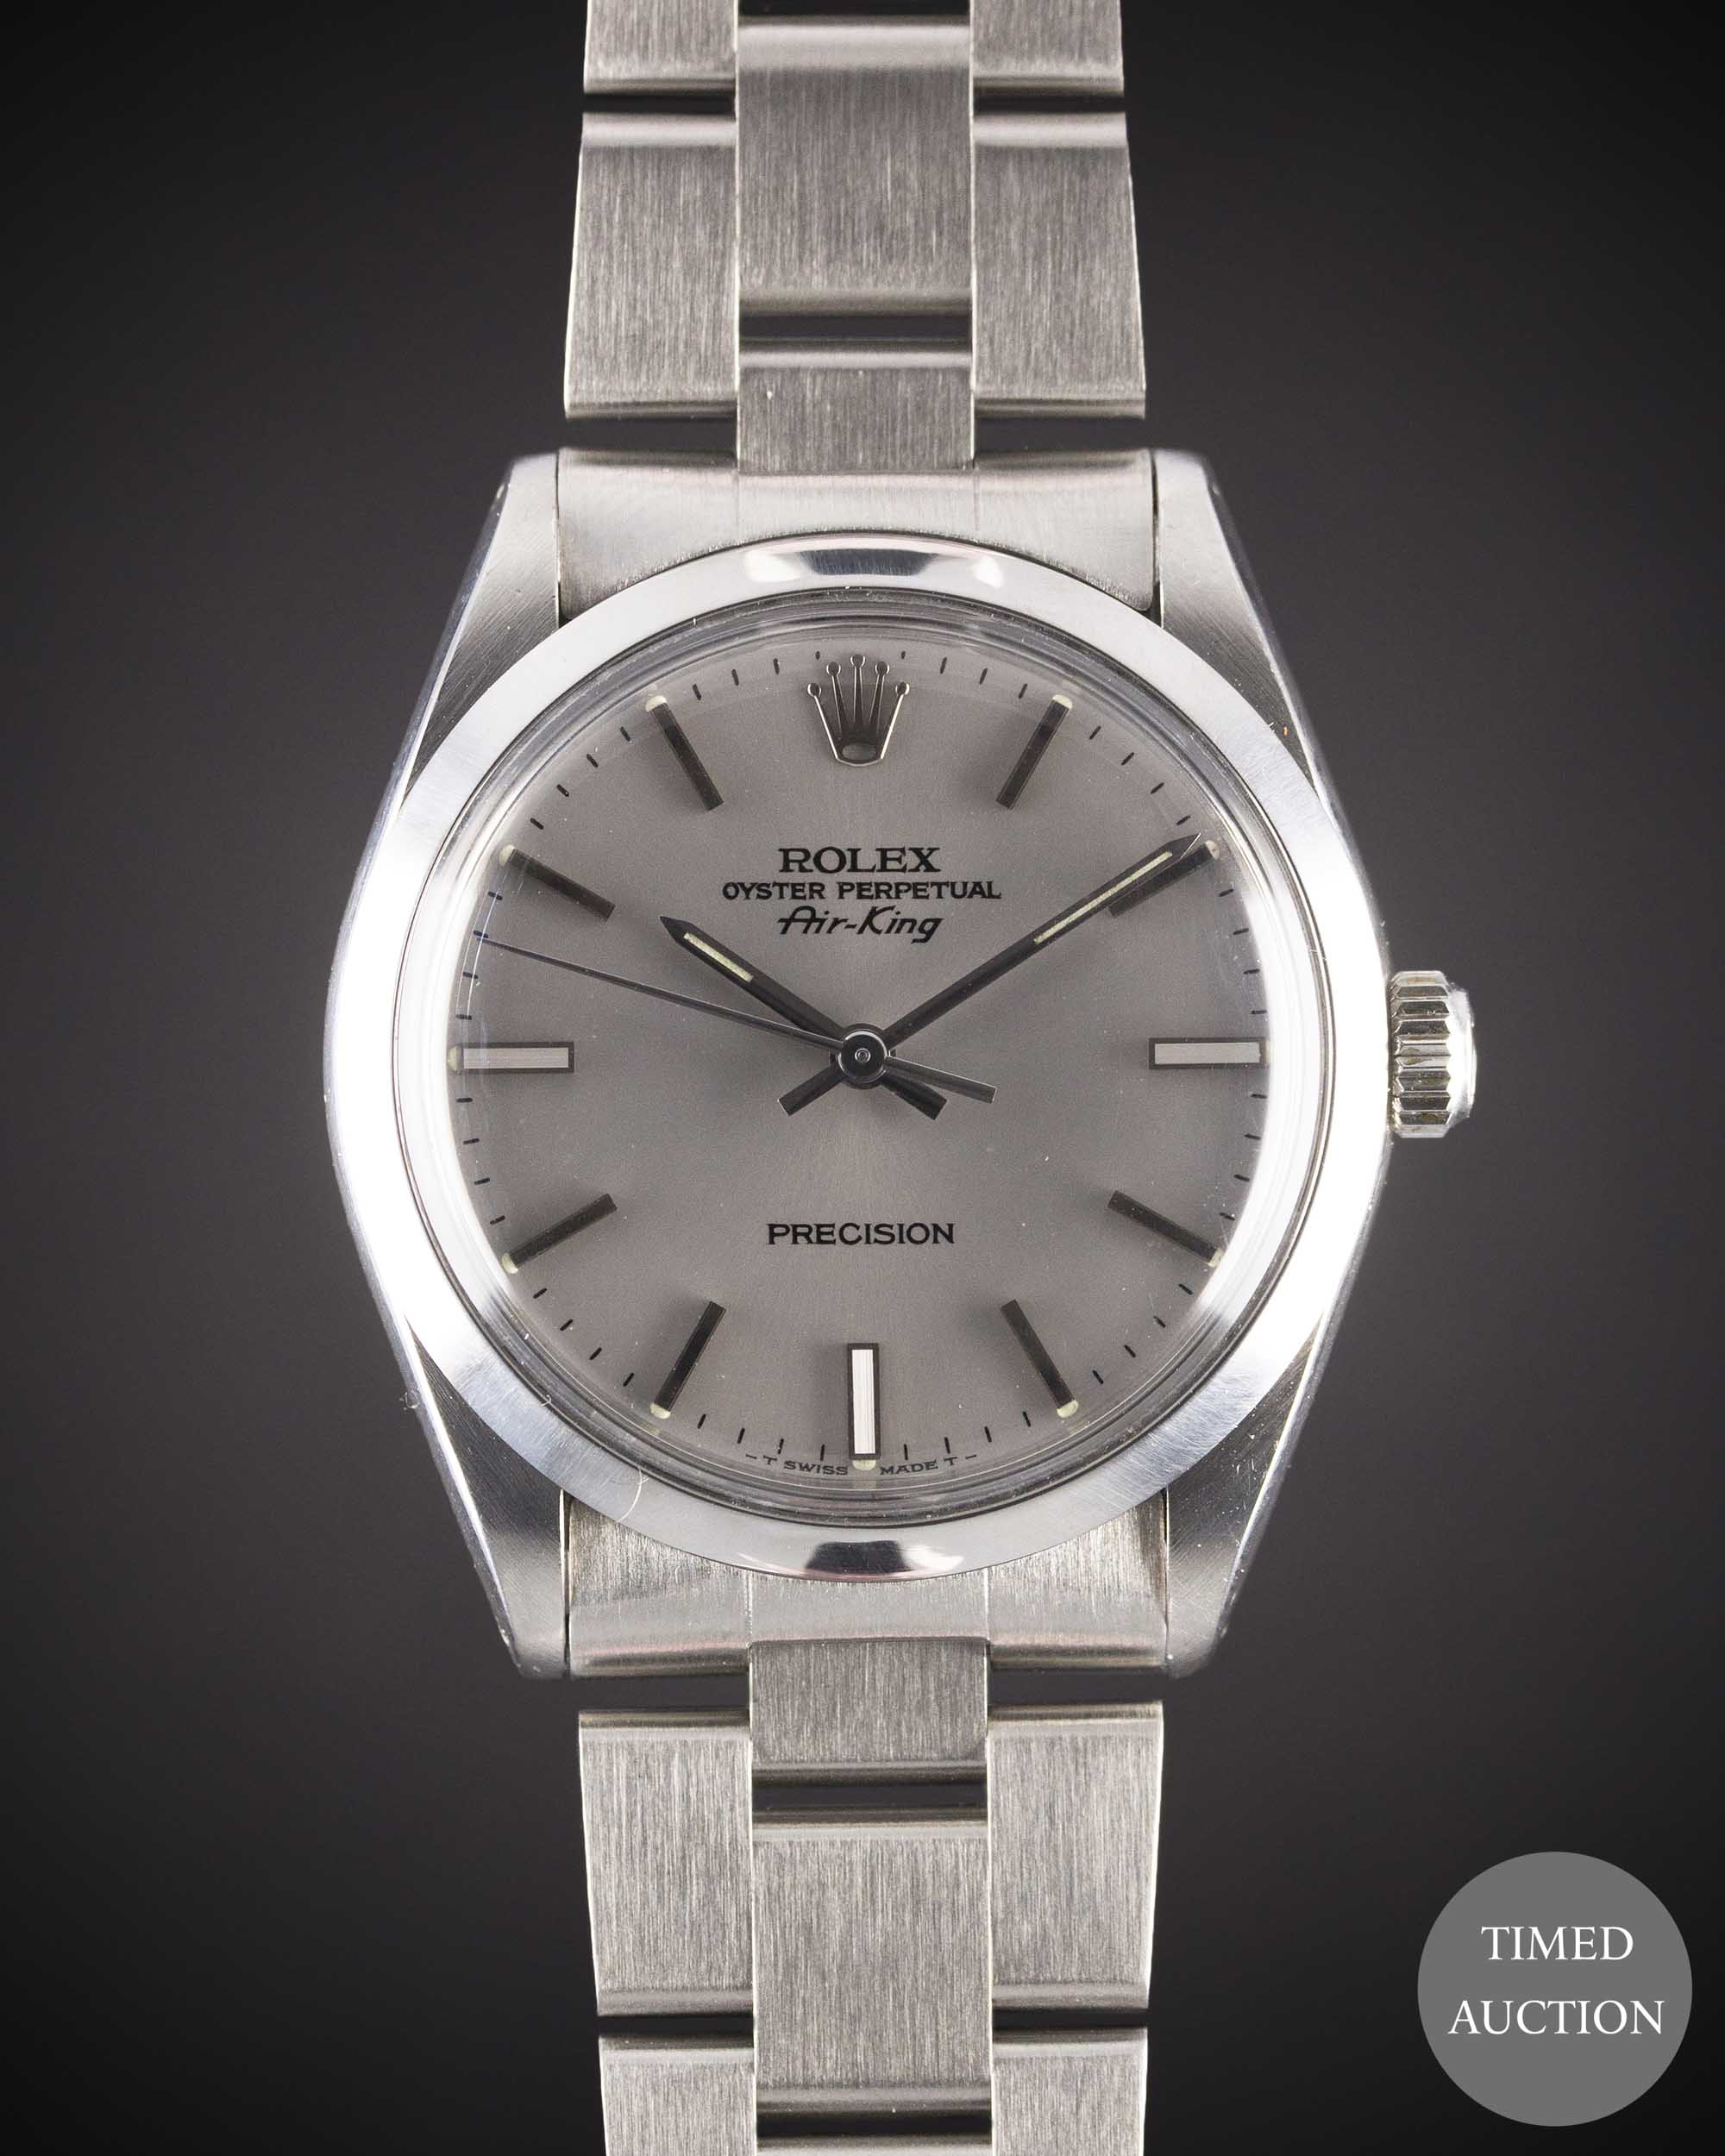 Lot 22 - A GENTLEMAN'S STAINLESS STEEL ROLEX OYSTER PERPETUAL AIR KING BRACELET WATCH CIRCA 1987, REF. 5500 R